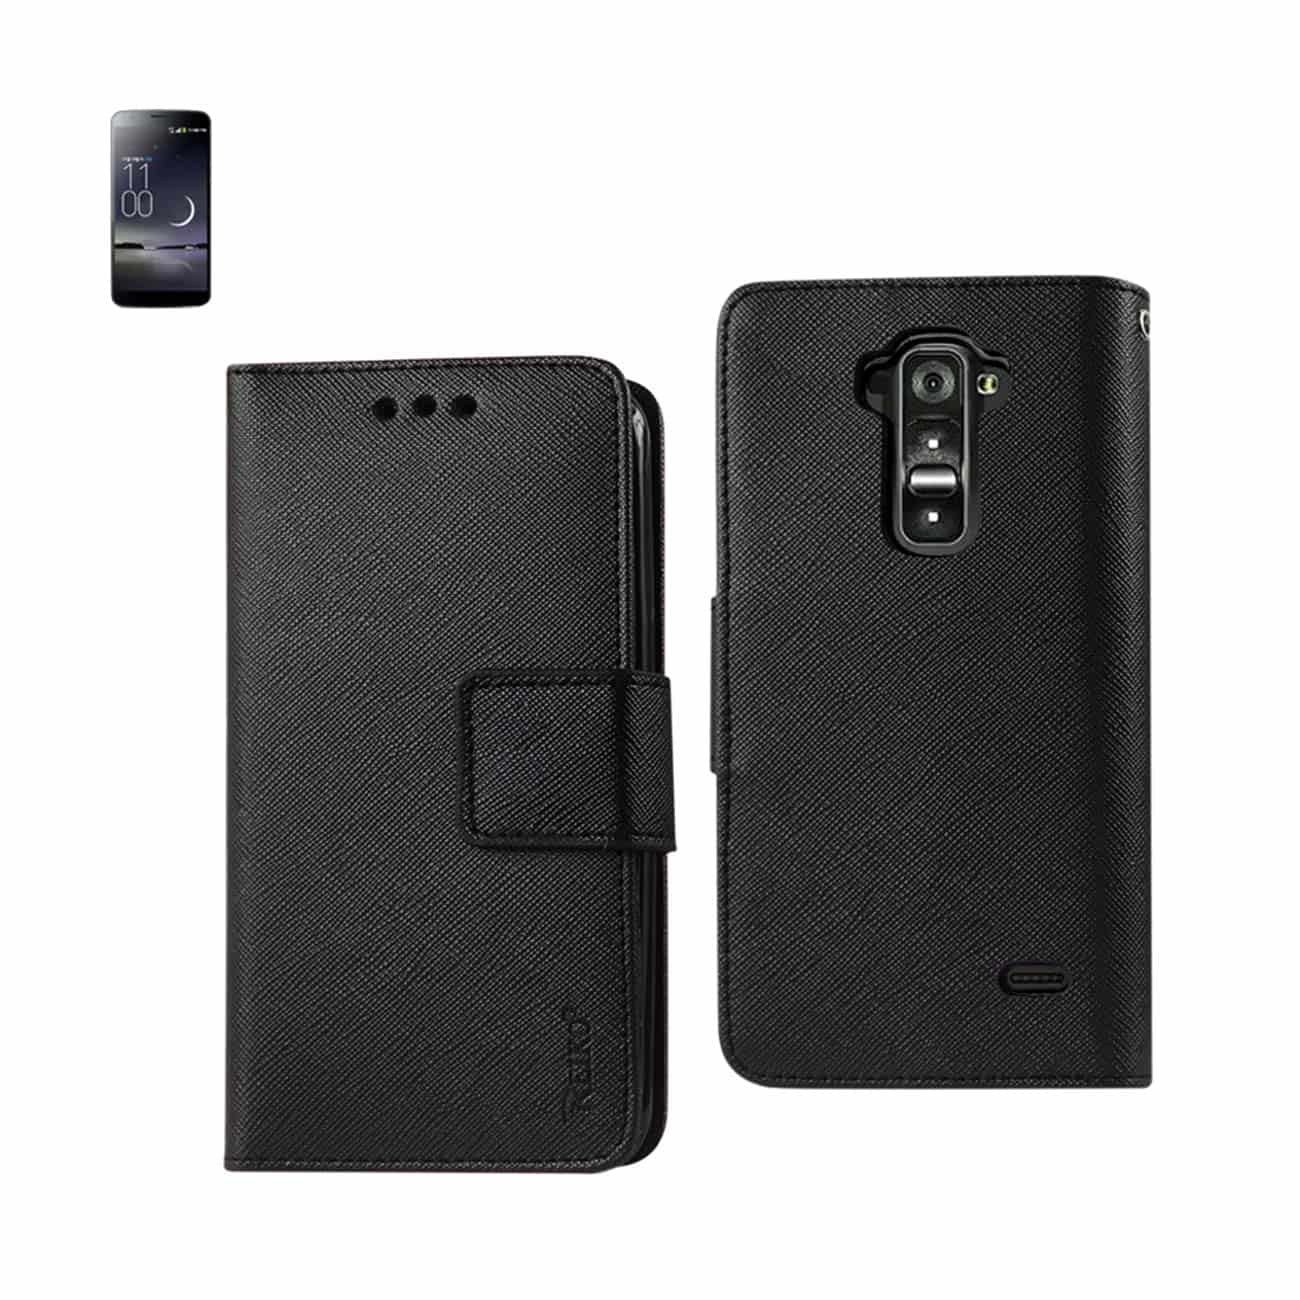 LG G FLEX 3-IN-1 WALLET CASE IN BLACK